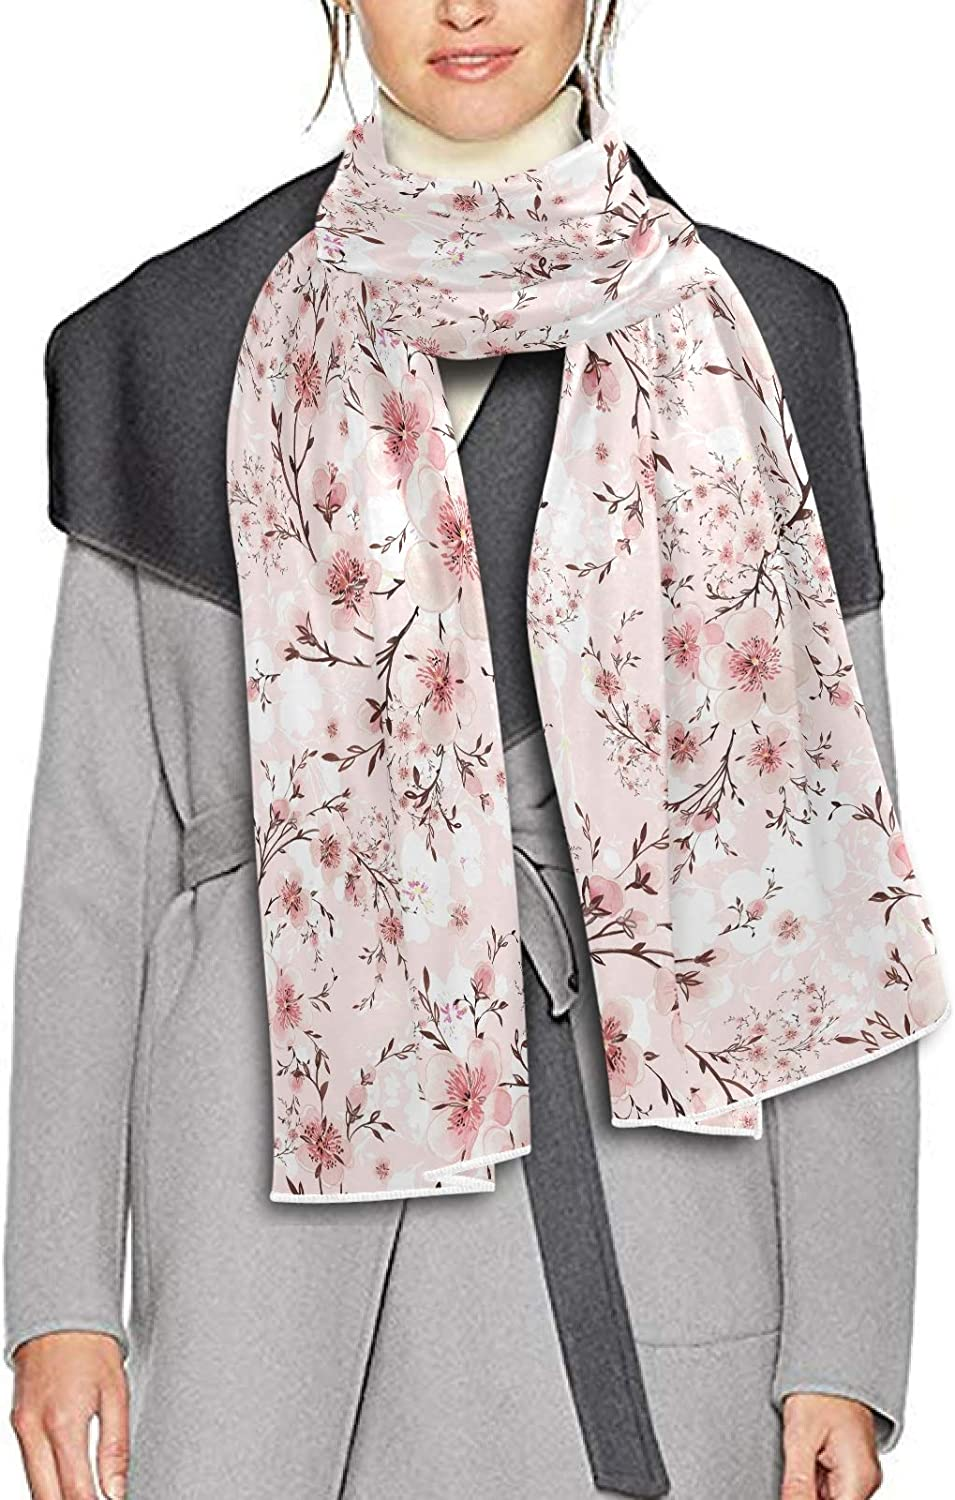 Scarf for Women and Men Blooming Branches Shawls Blanket Scarf wraps Thick Soft Winter Oversized Scarf Lightweight